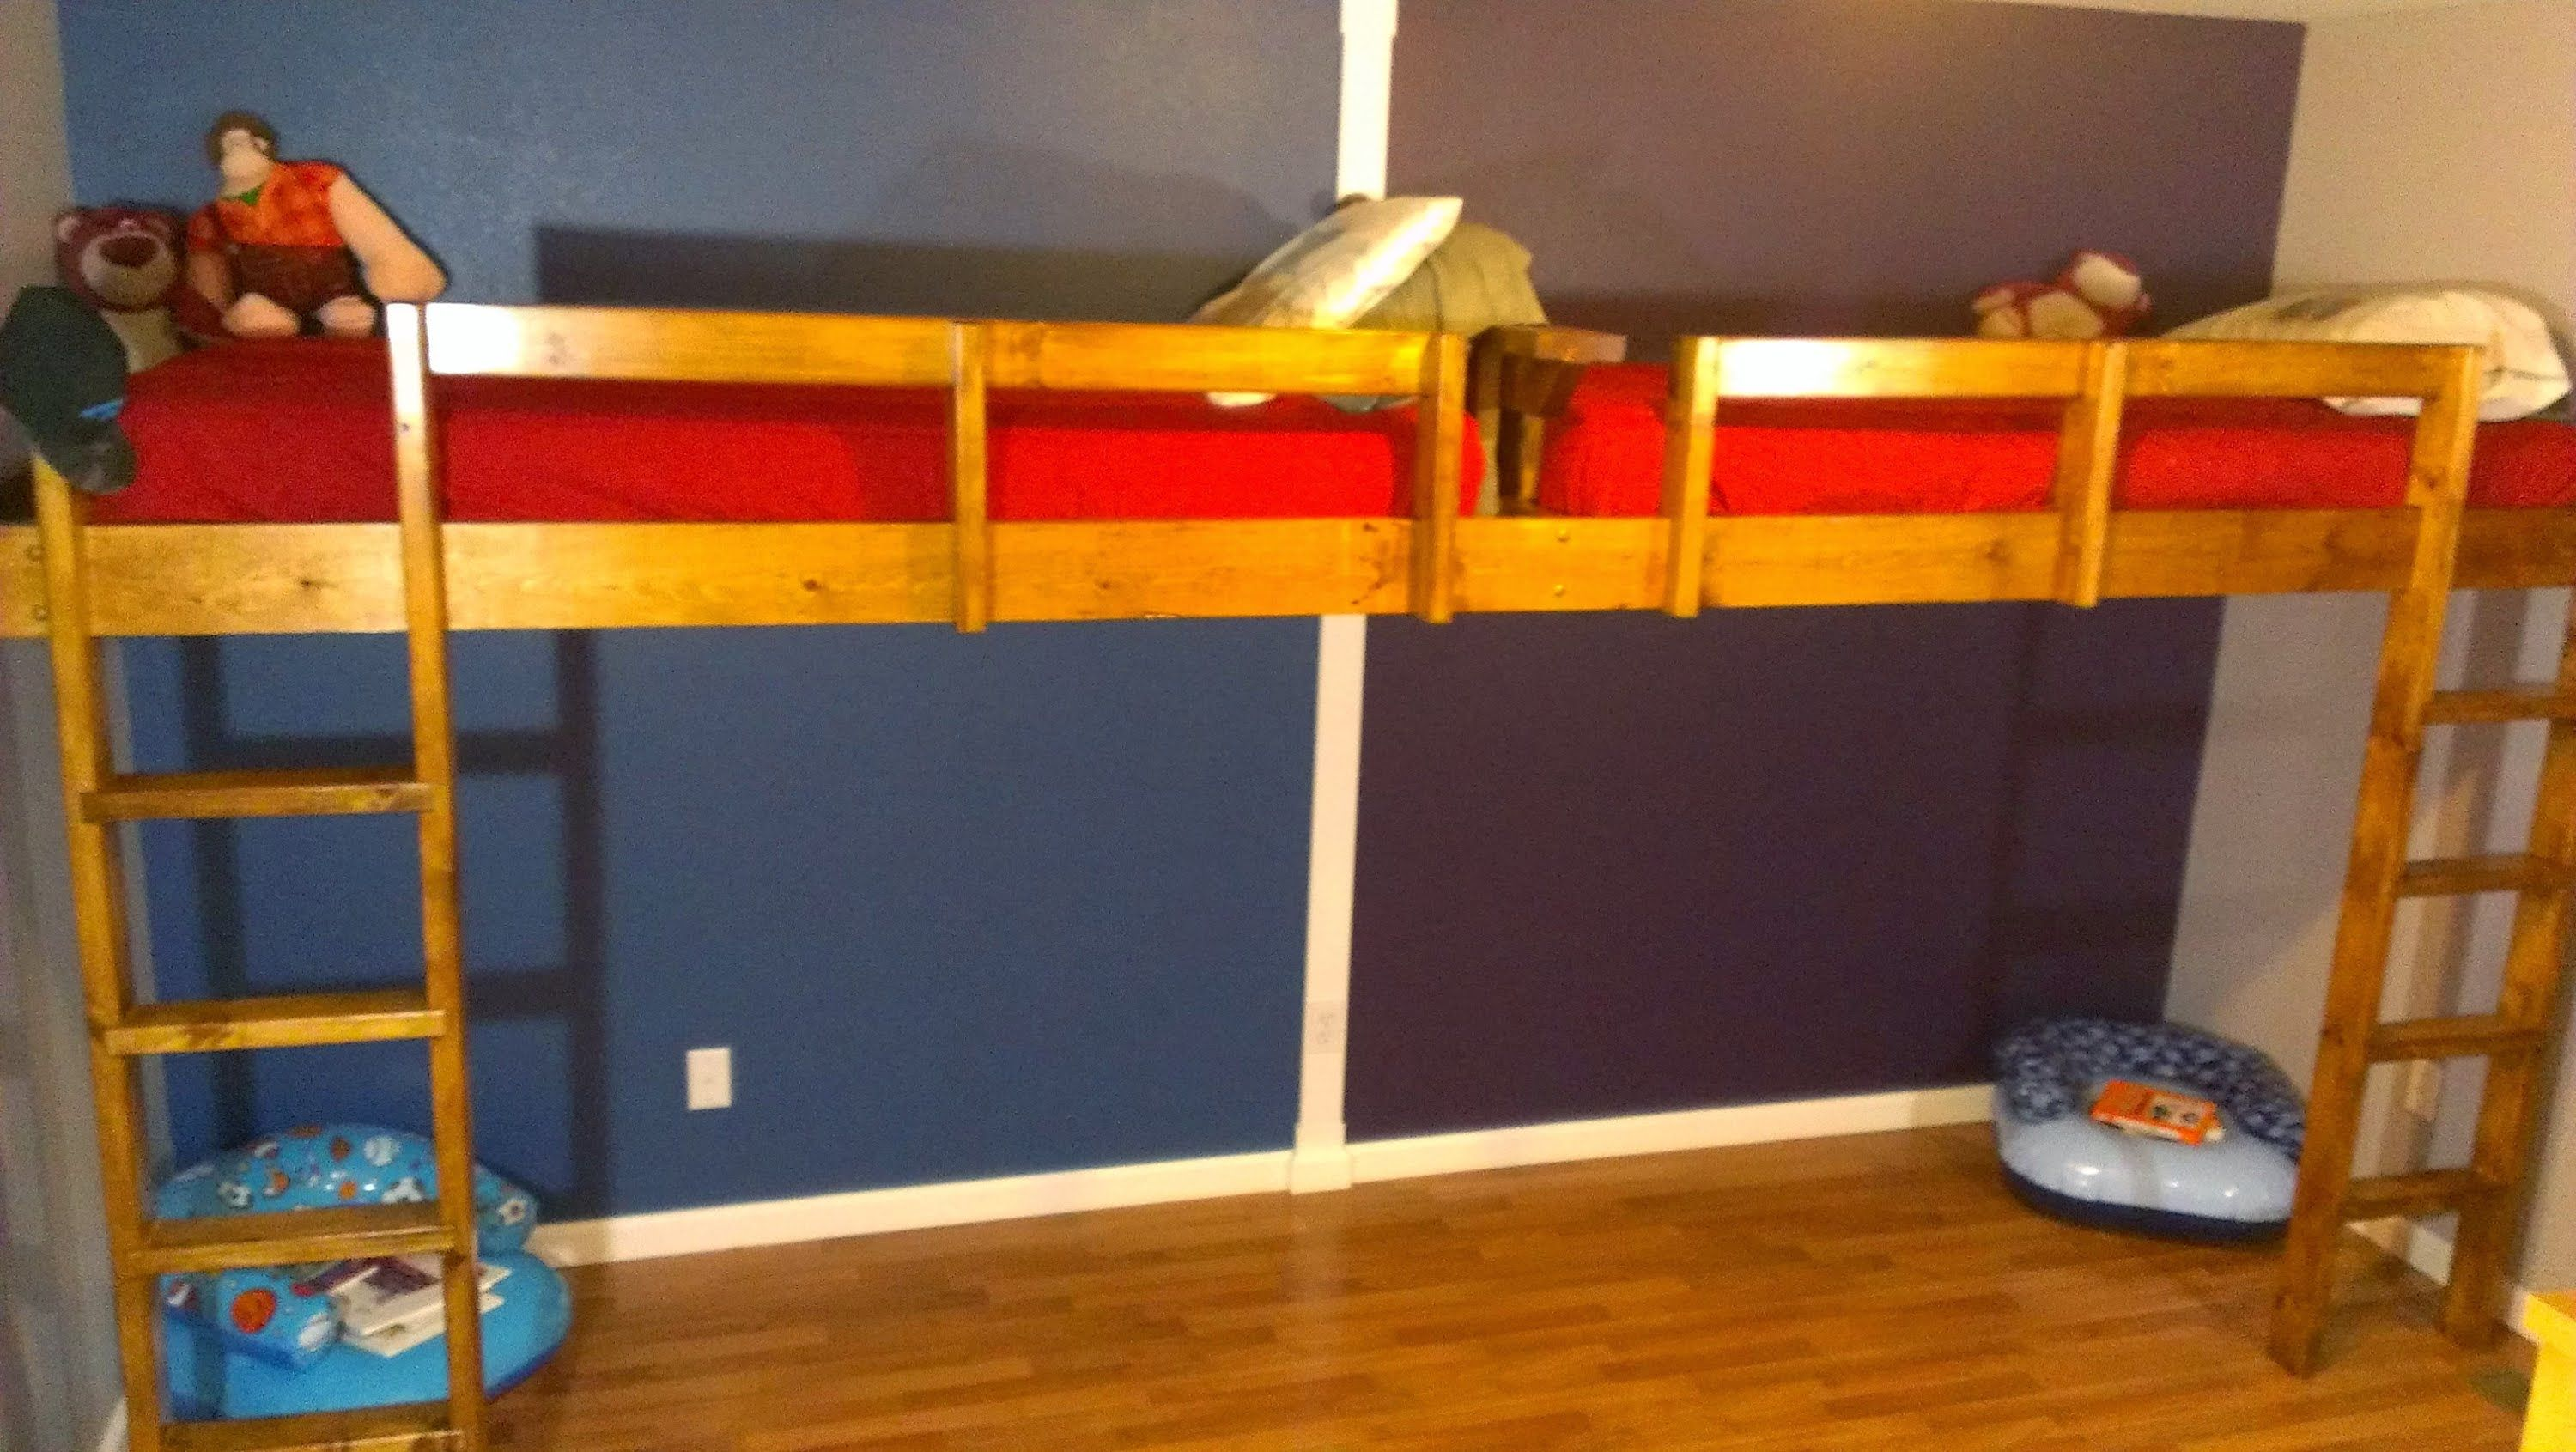 I Built This Double Loft Bed With 2 Twin Mattresses For My Two Young Boys Ages 9 And 11 We